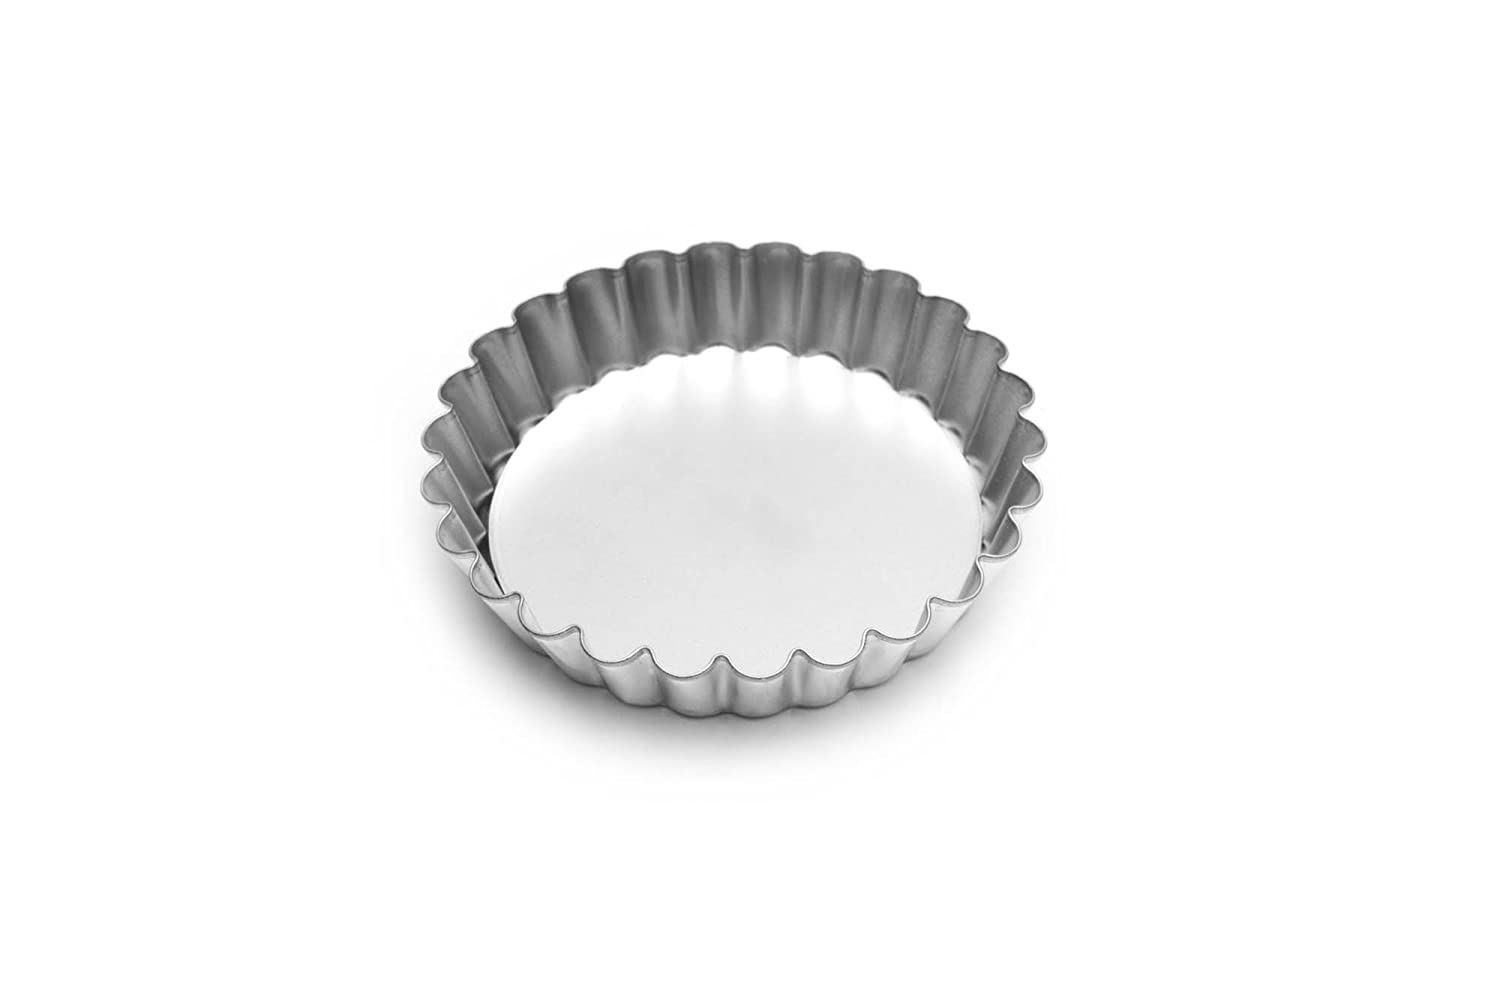 Fox Run 4591 Tartlet/Quiche Pan with Removable Bottom, Tin-Plated Steel, 4-Inch